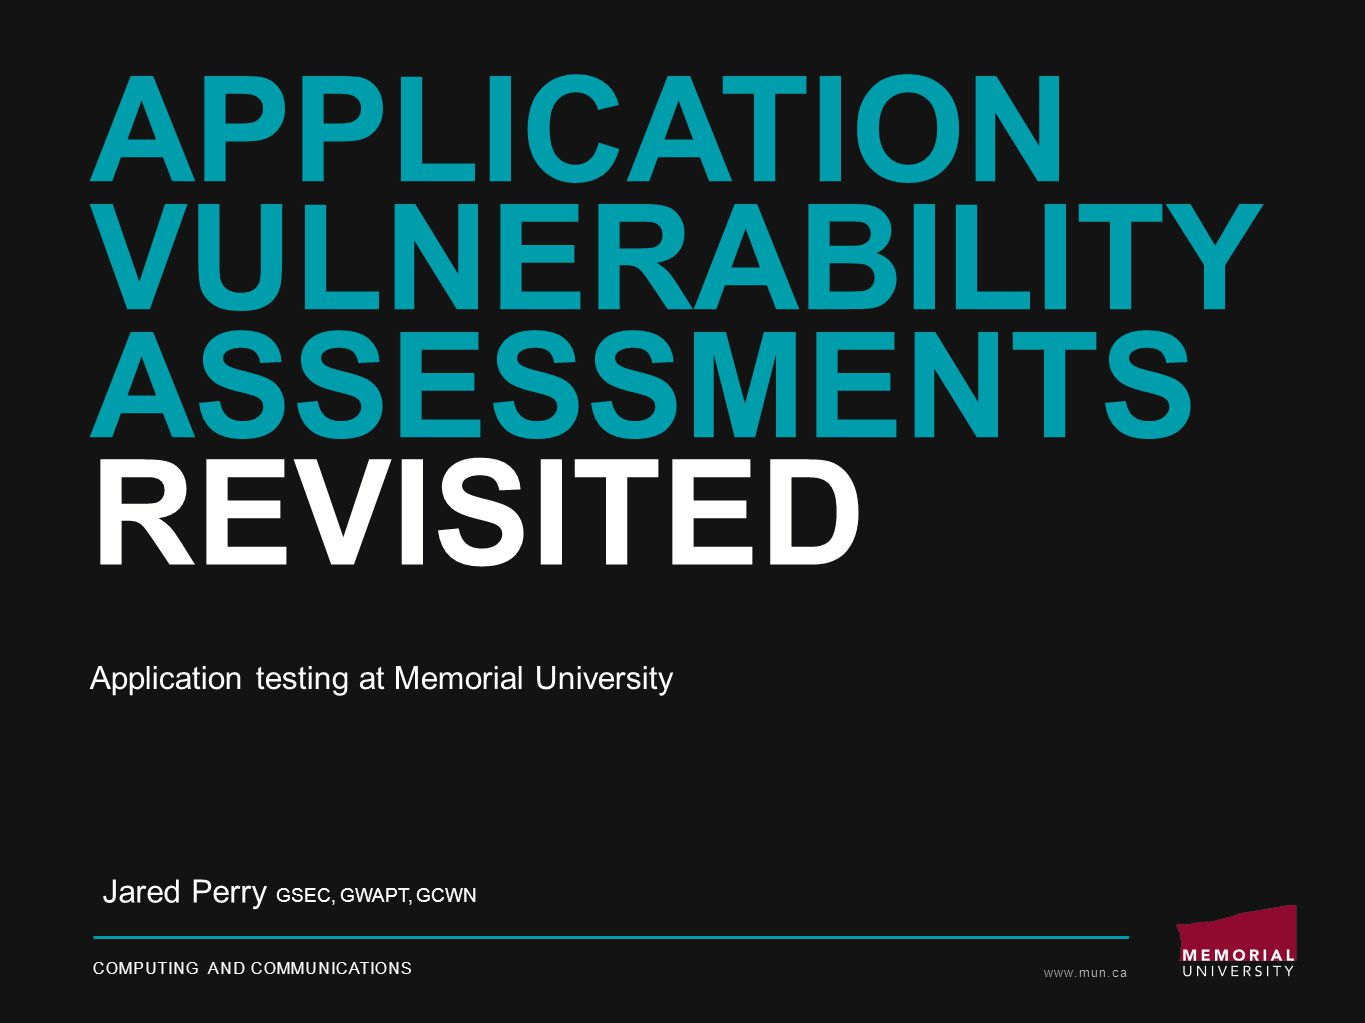 APPLICATION VULNERABILITY ASSESSMENTS REVISITED COMPUTING AND COMMUNICATIONS www.mun.ca Jared Perry GSEC, GWAPT, GCWN Application testing at Memorial University